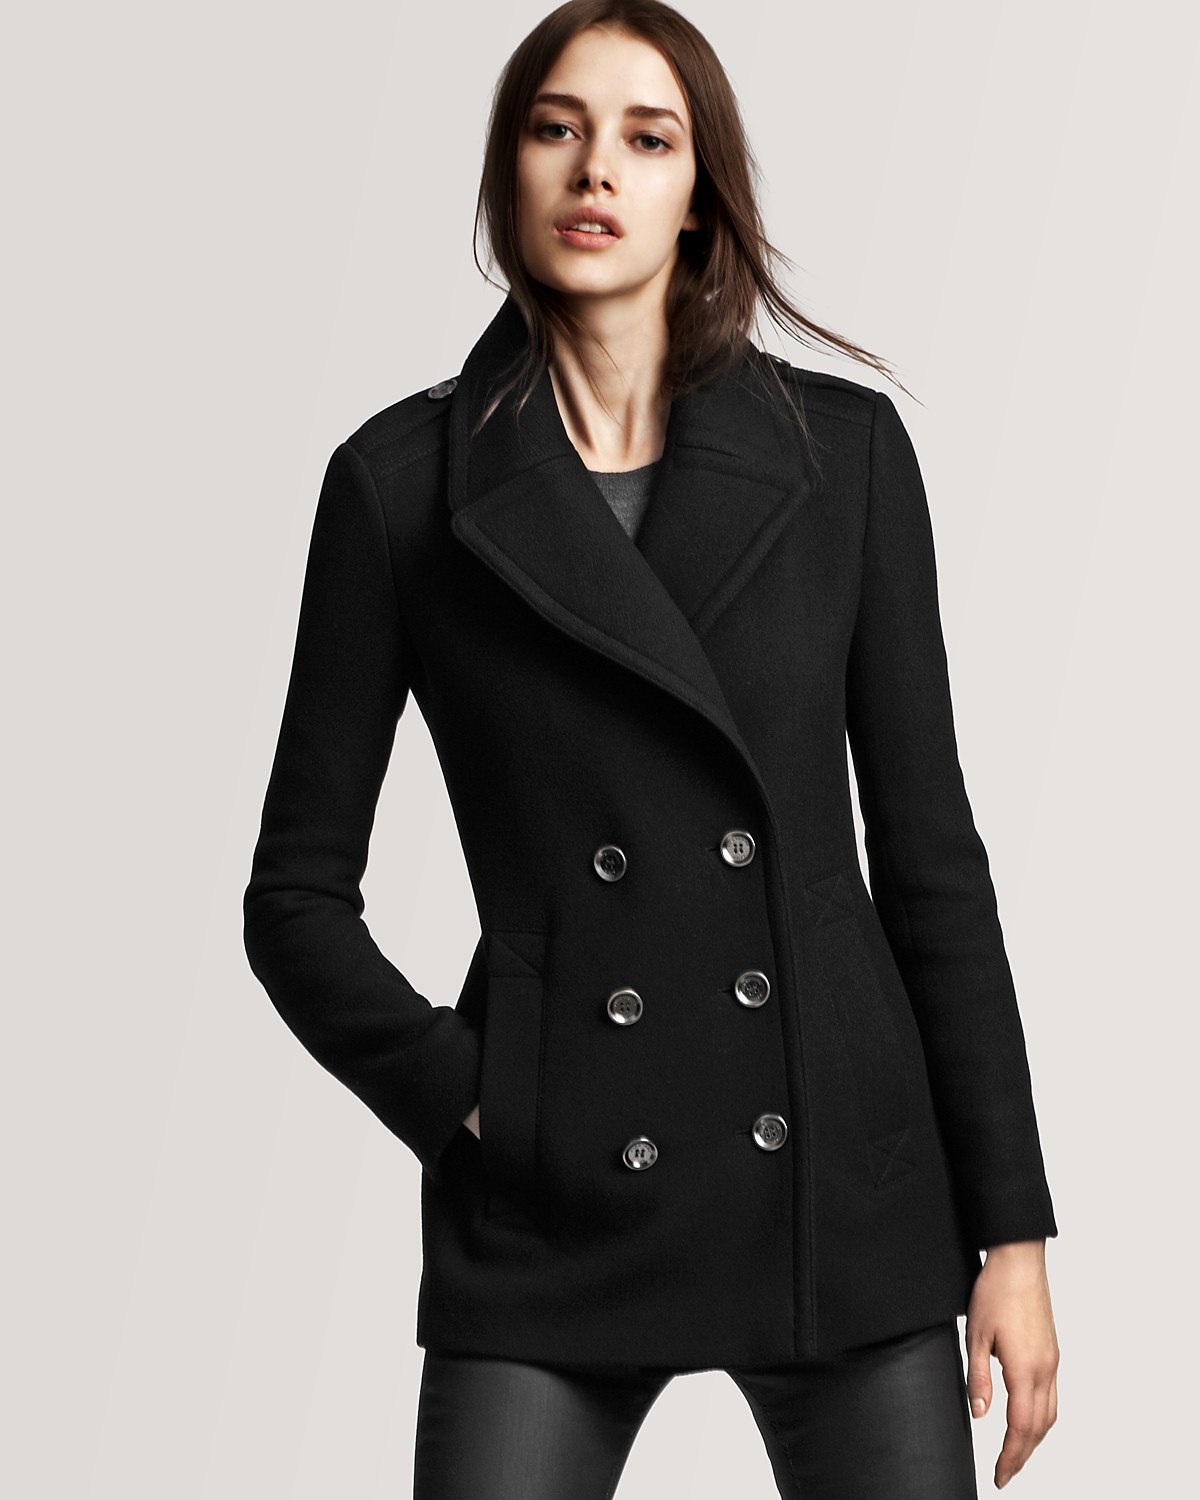 womens pea coat. WOMEN'S DESIGNER PEACOATS. Let street-smart women's peacoats see you through cooling temperatures with style and confidence. The classic double-breasted design is always in vogue, and Marc New York has traditional brushed twill pieces for both dress and casual wear.